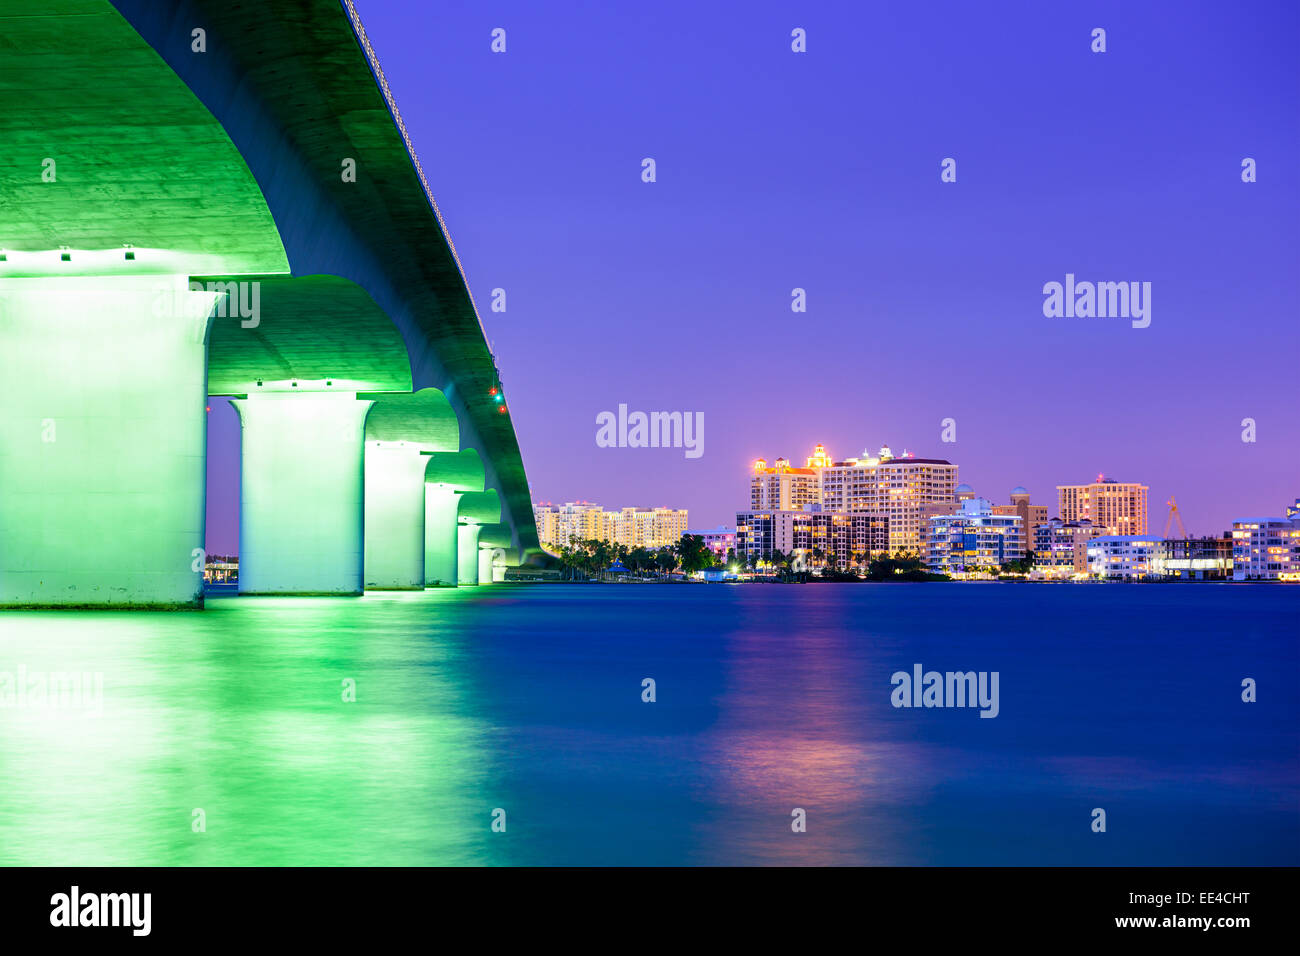 Sarasota, Florida, USA downtown city skyline. - Stock Image